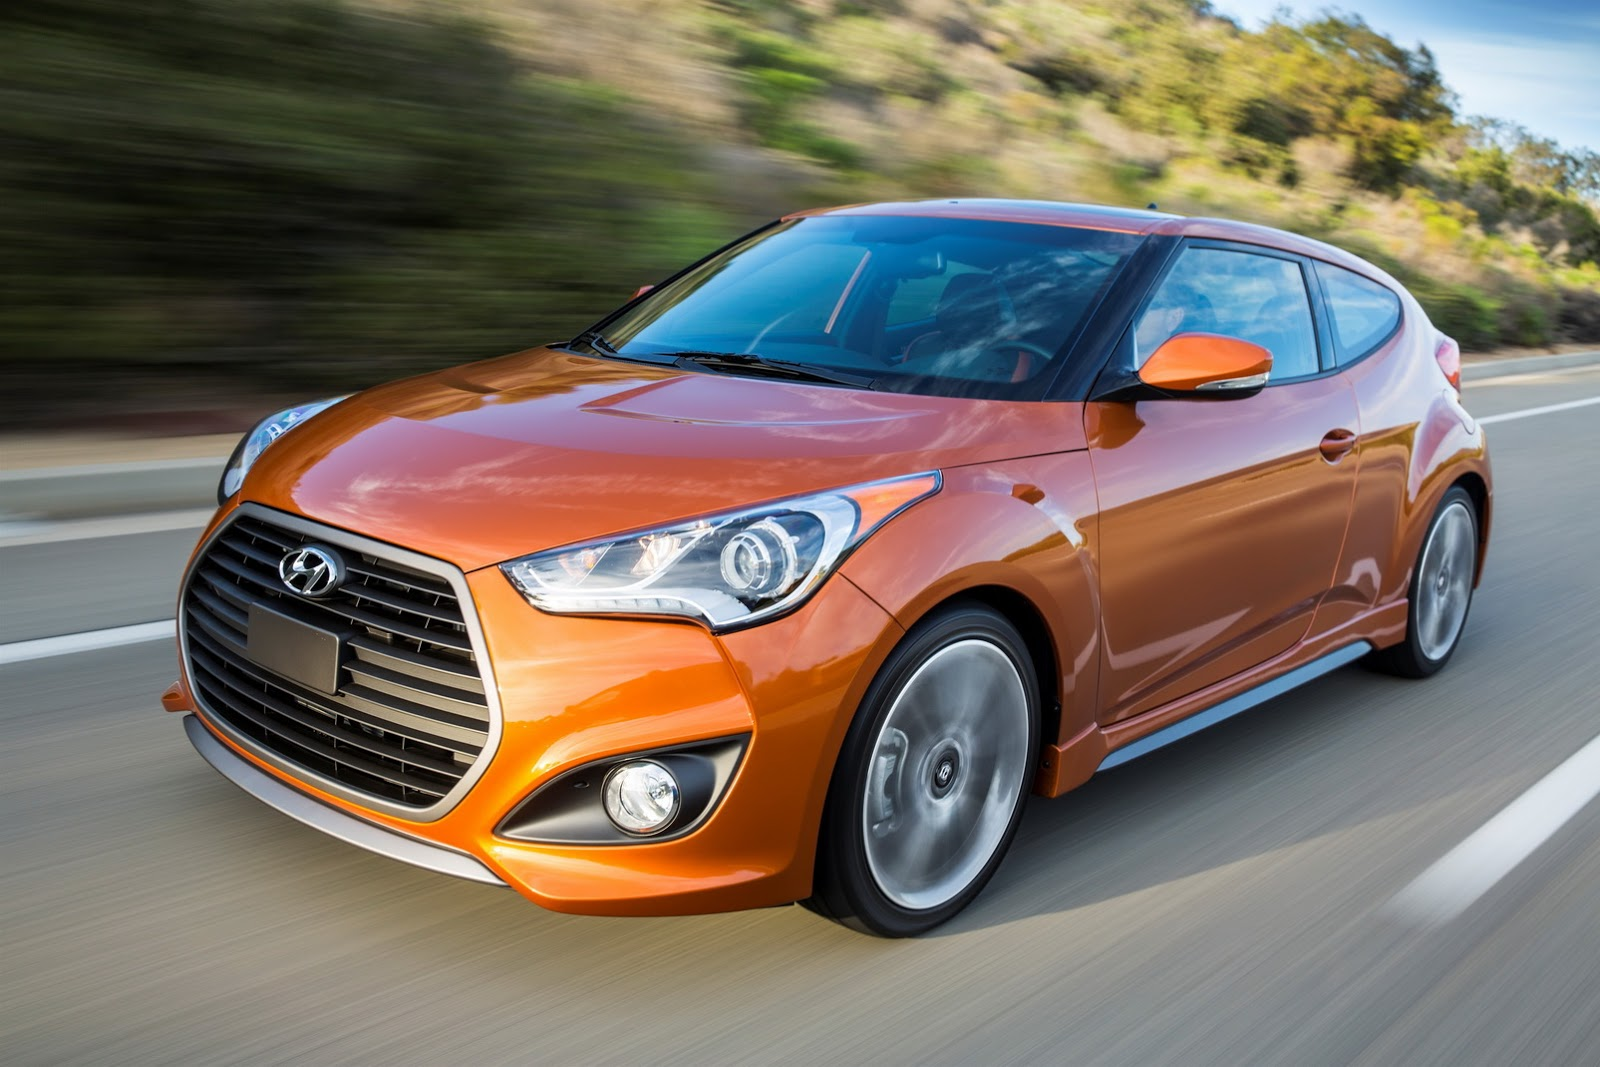 65 photos and 3 quick facts about the 2017 hyundai veloster value edition suv news and analysis. Black Bedroom Furniture Sets. Home Design Ideas